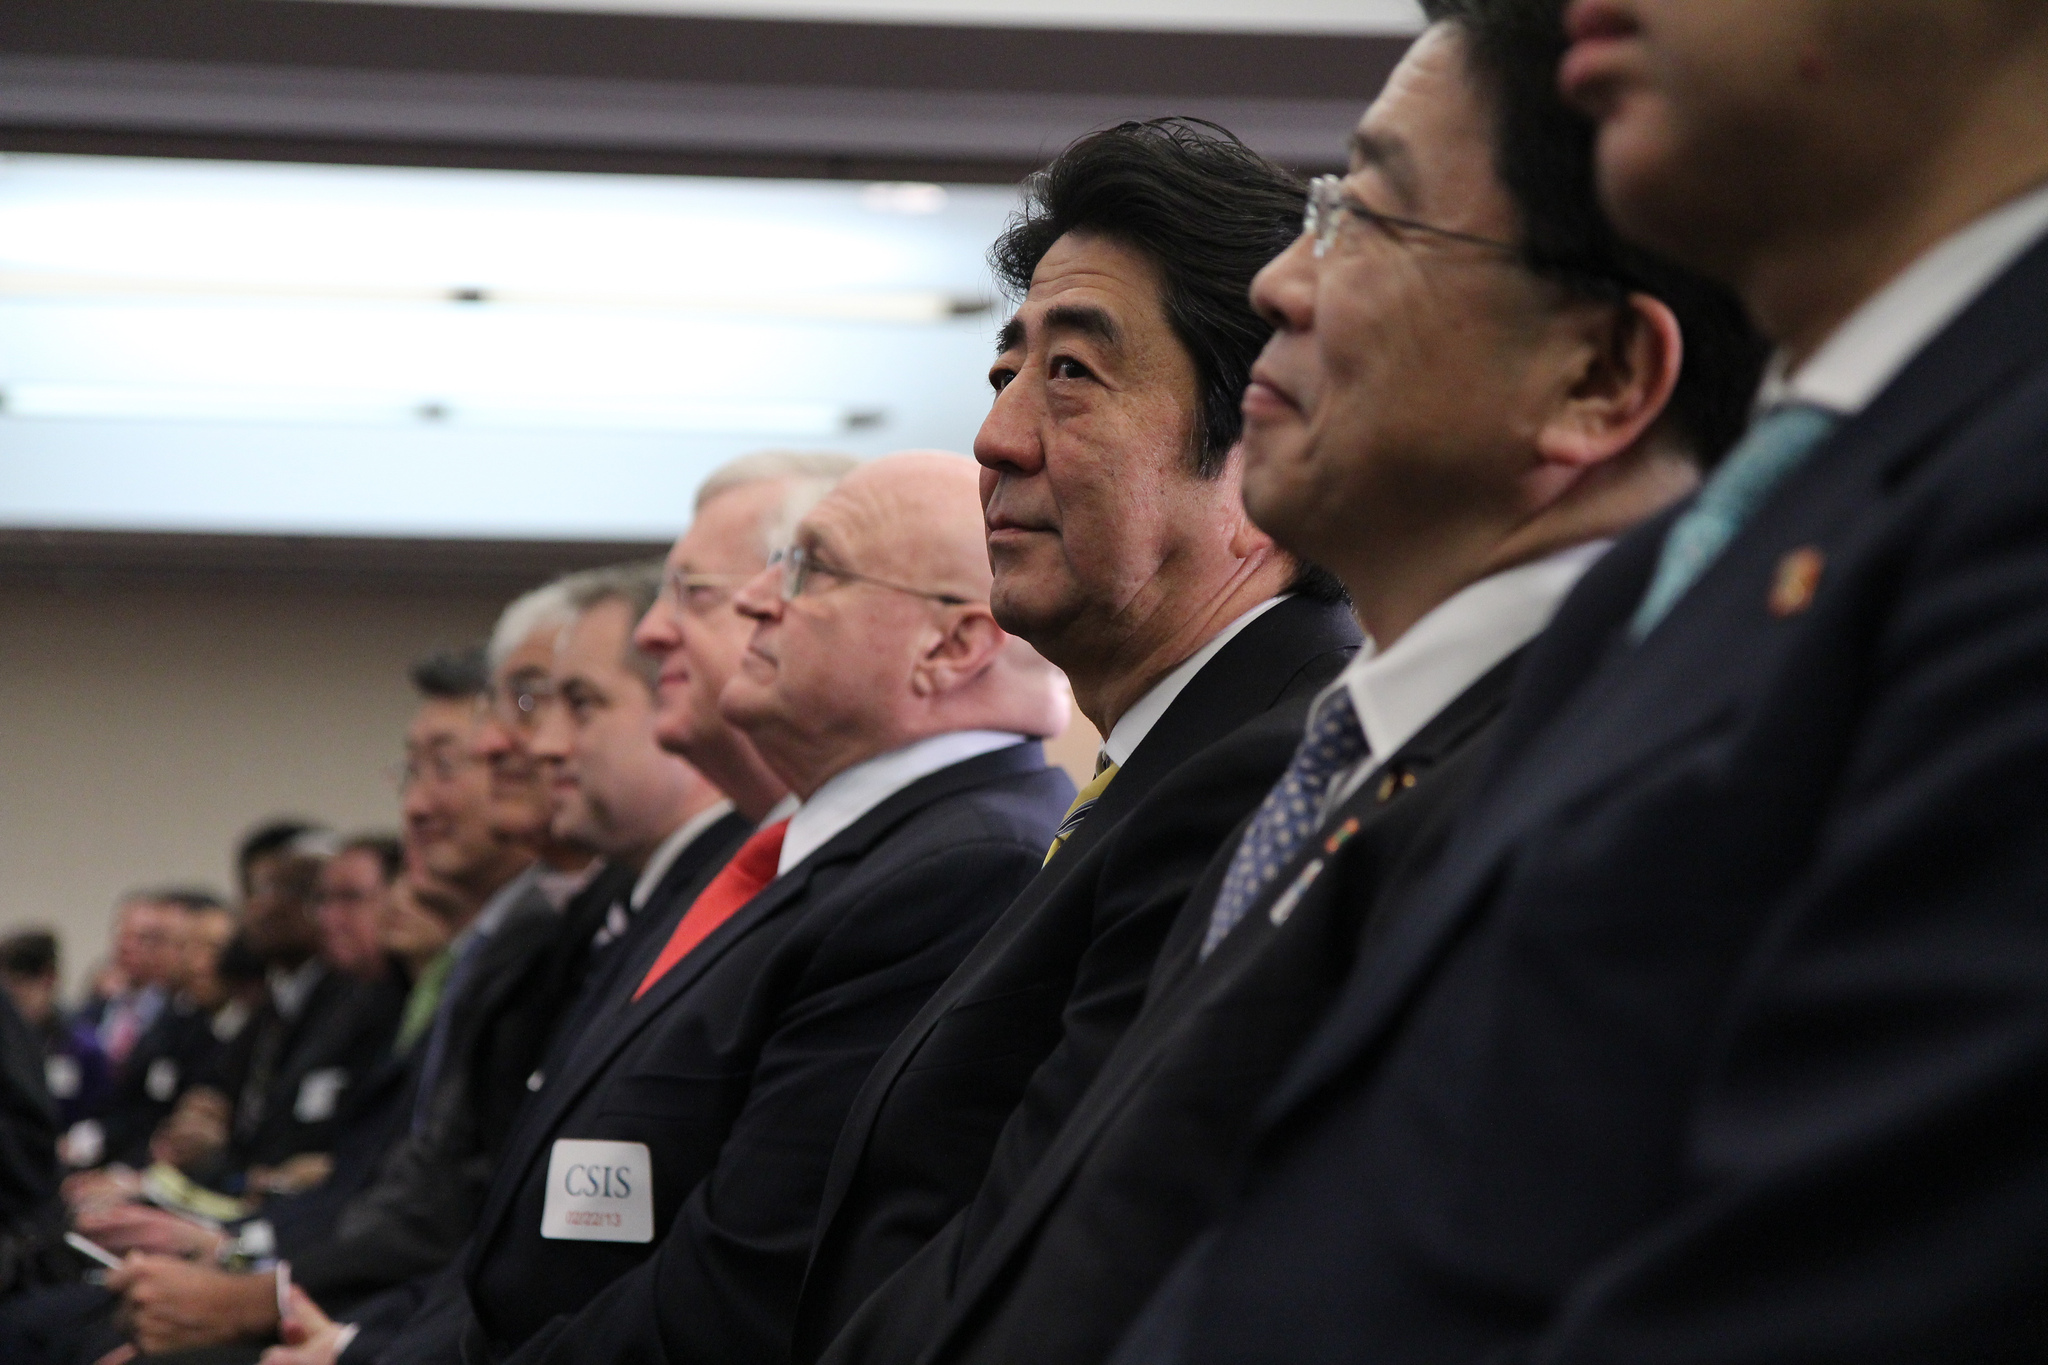 Shinzo Abe, Prime Minister of Japan at CSIS Conference (by CSIS via Flickr)